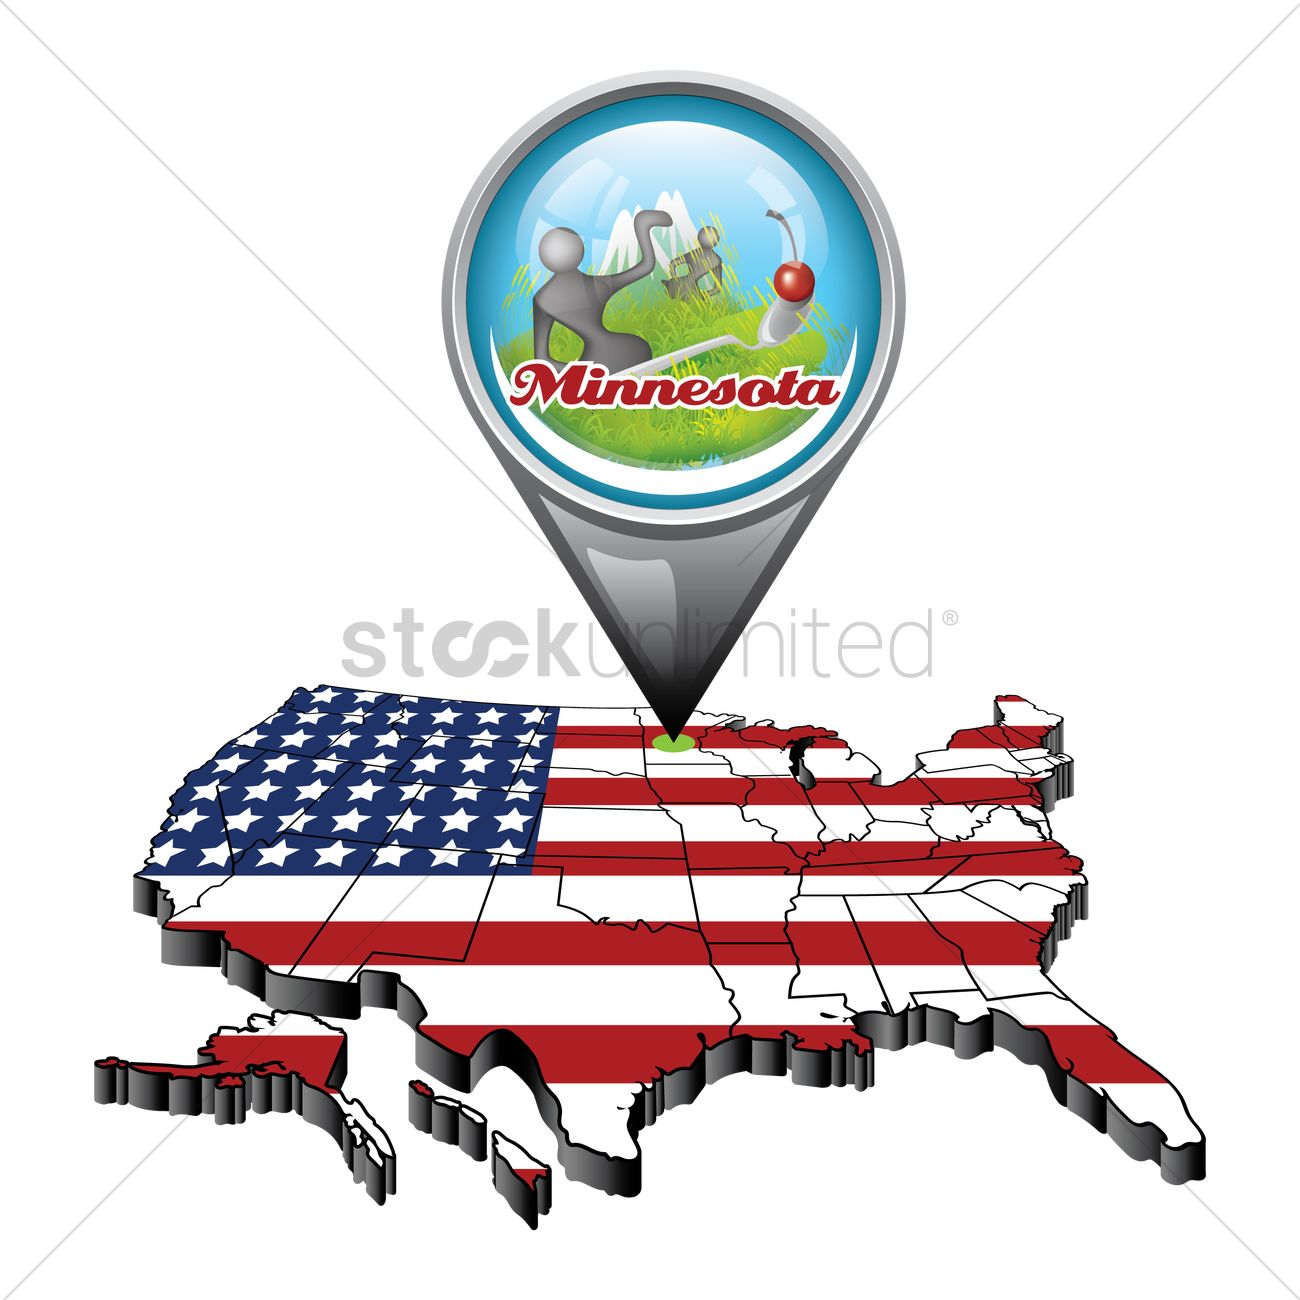 Us Map With Pin Showing Minnesota State Vector Image - A map of the us showing minnesota